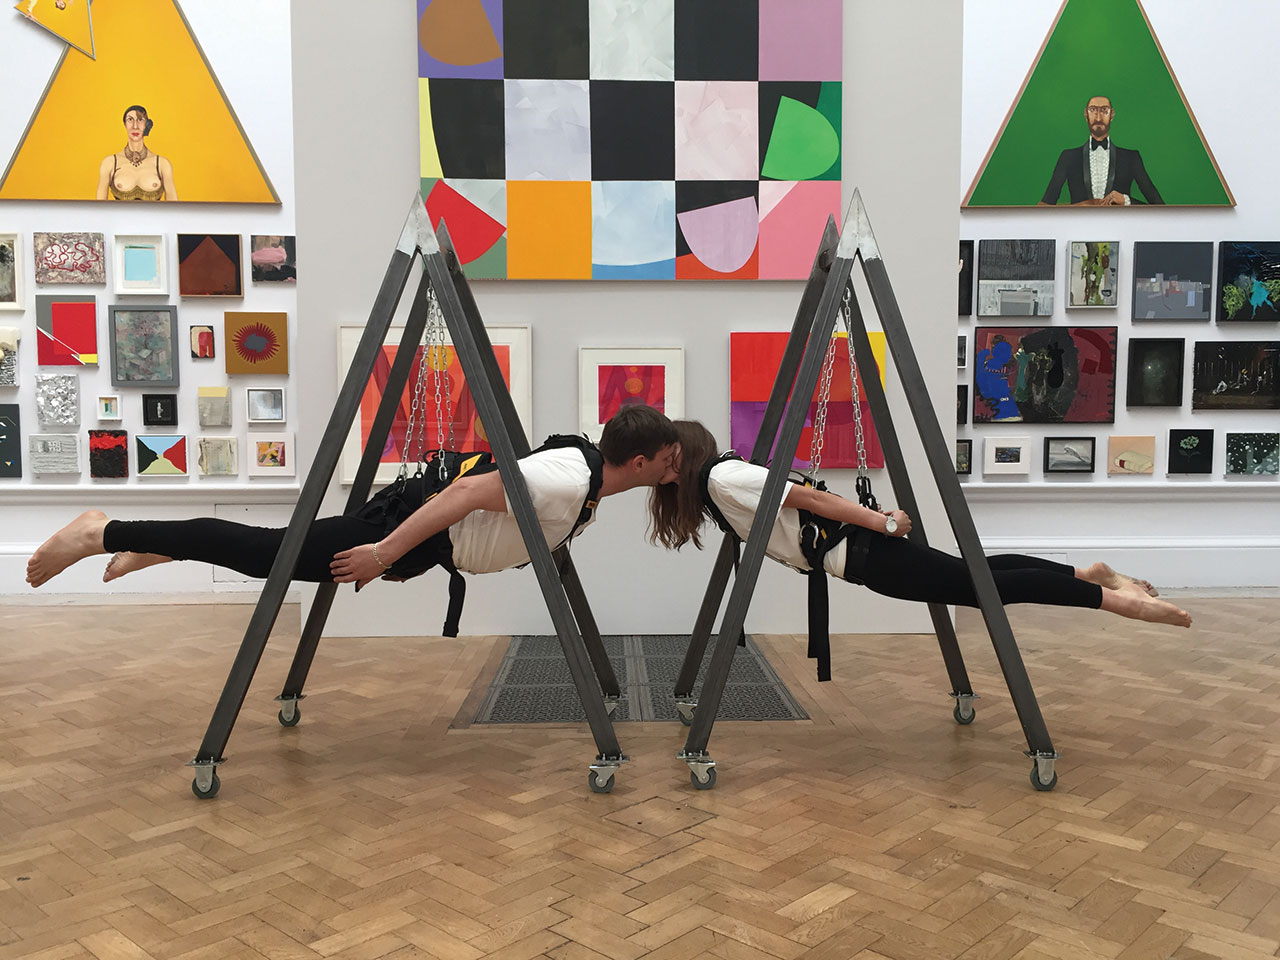 India Mackie and Declan Jenkins, 'Cantilever Kiss', Summer Exhibition, 2017 © Royal Academy of Arts